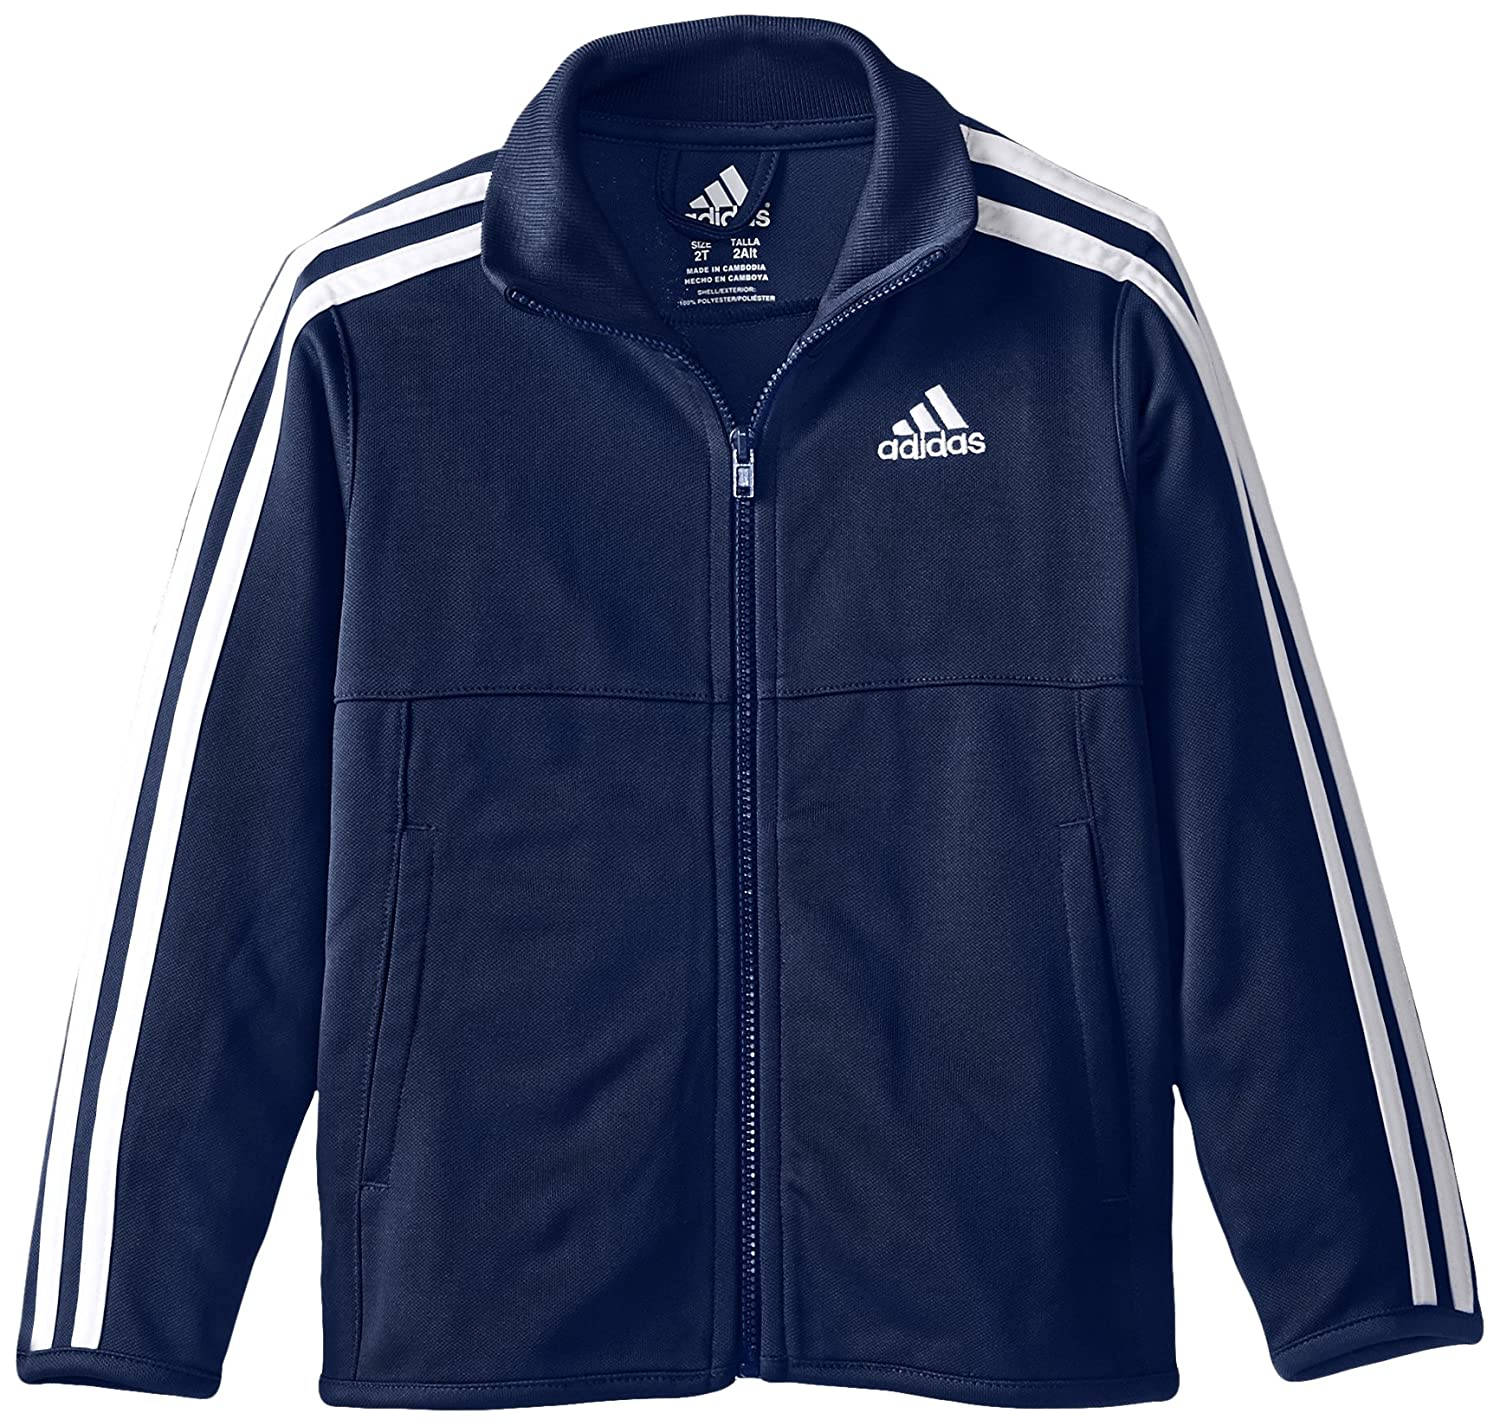 Adidas Little Boys' Tiro Jacket Dark Indigo 2T Adidas Boys 2-7 1215813